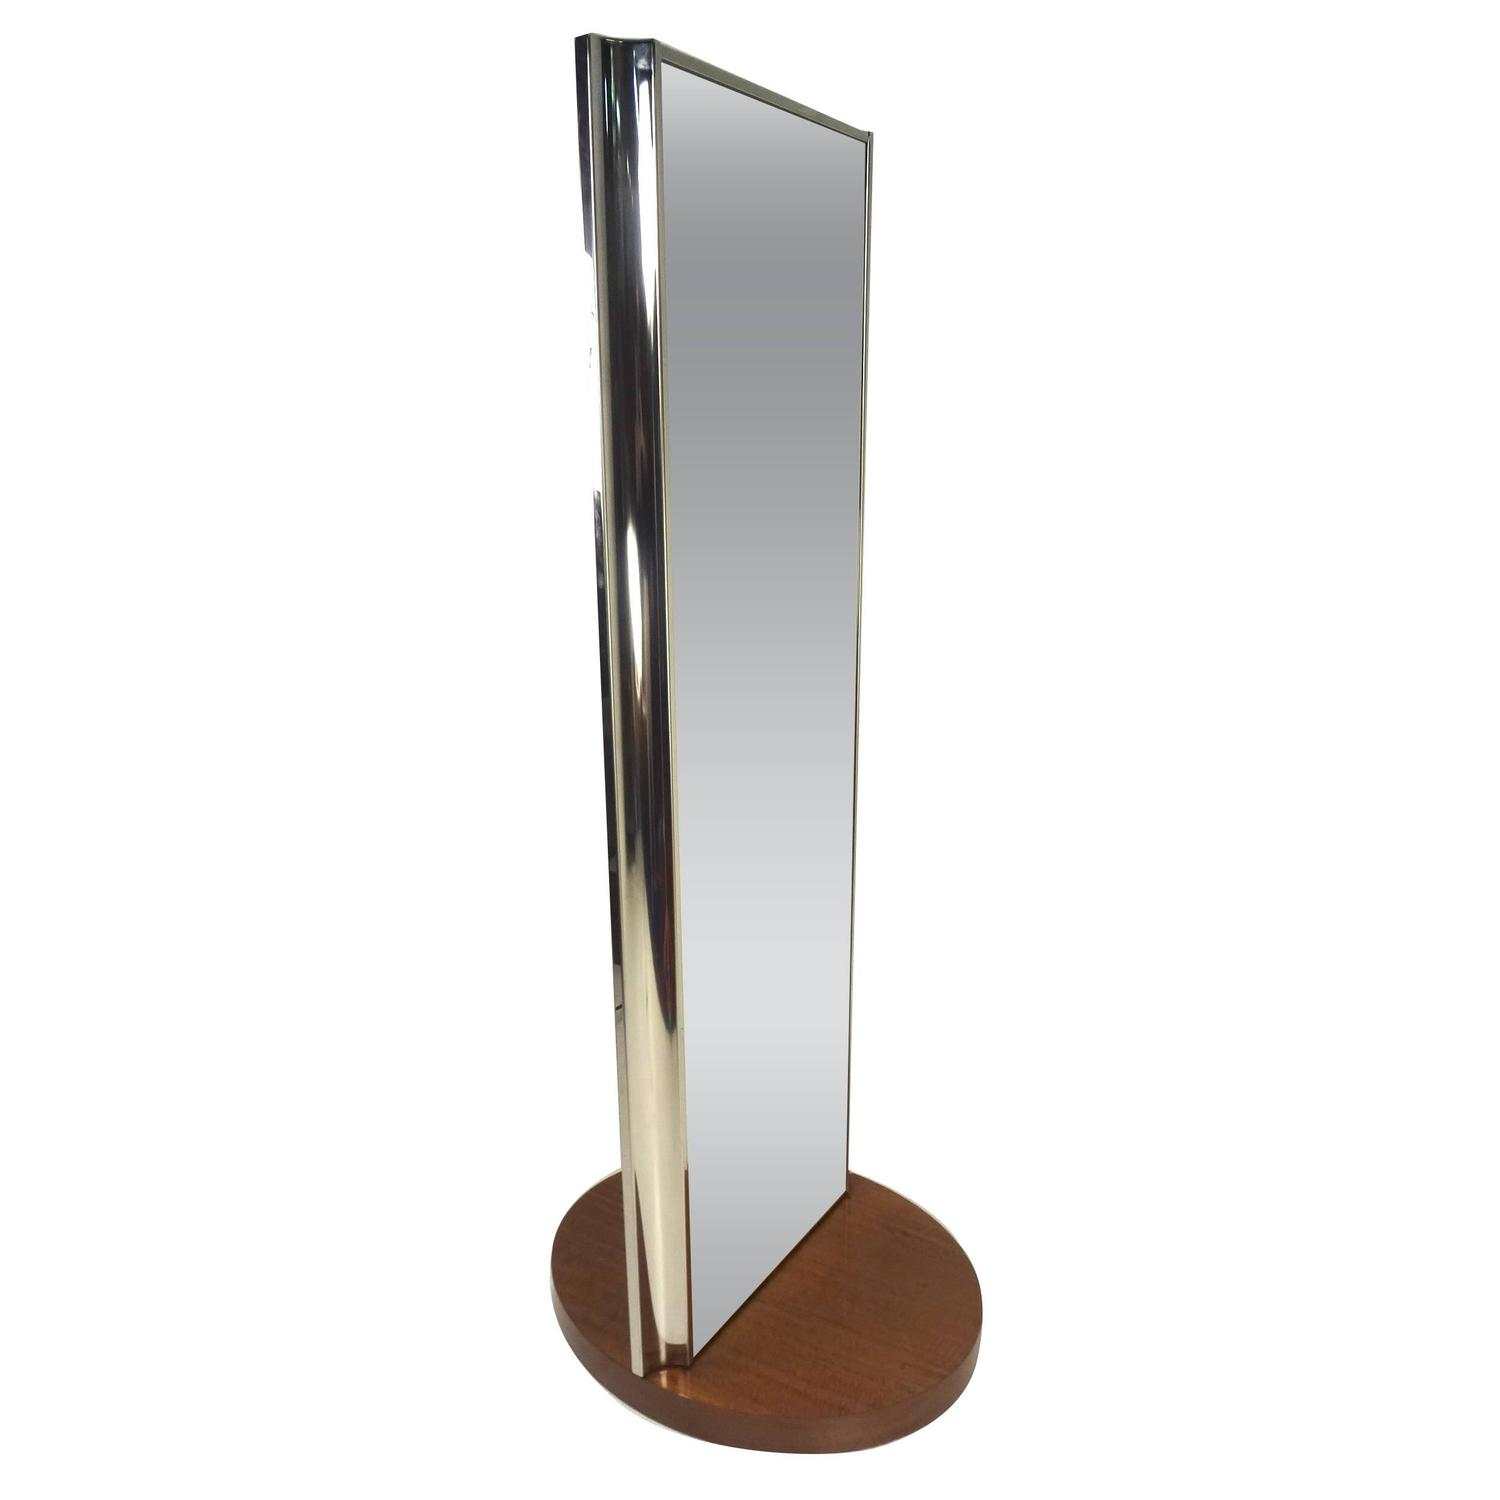 chrome floor mirrors and fulllength mirrors   for sale at stdibs - revolving dressing mirror